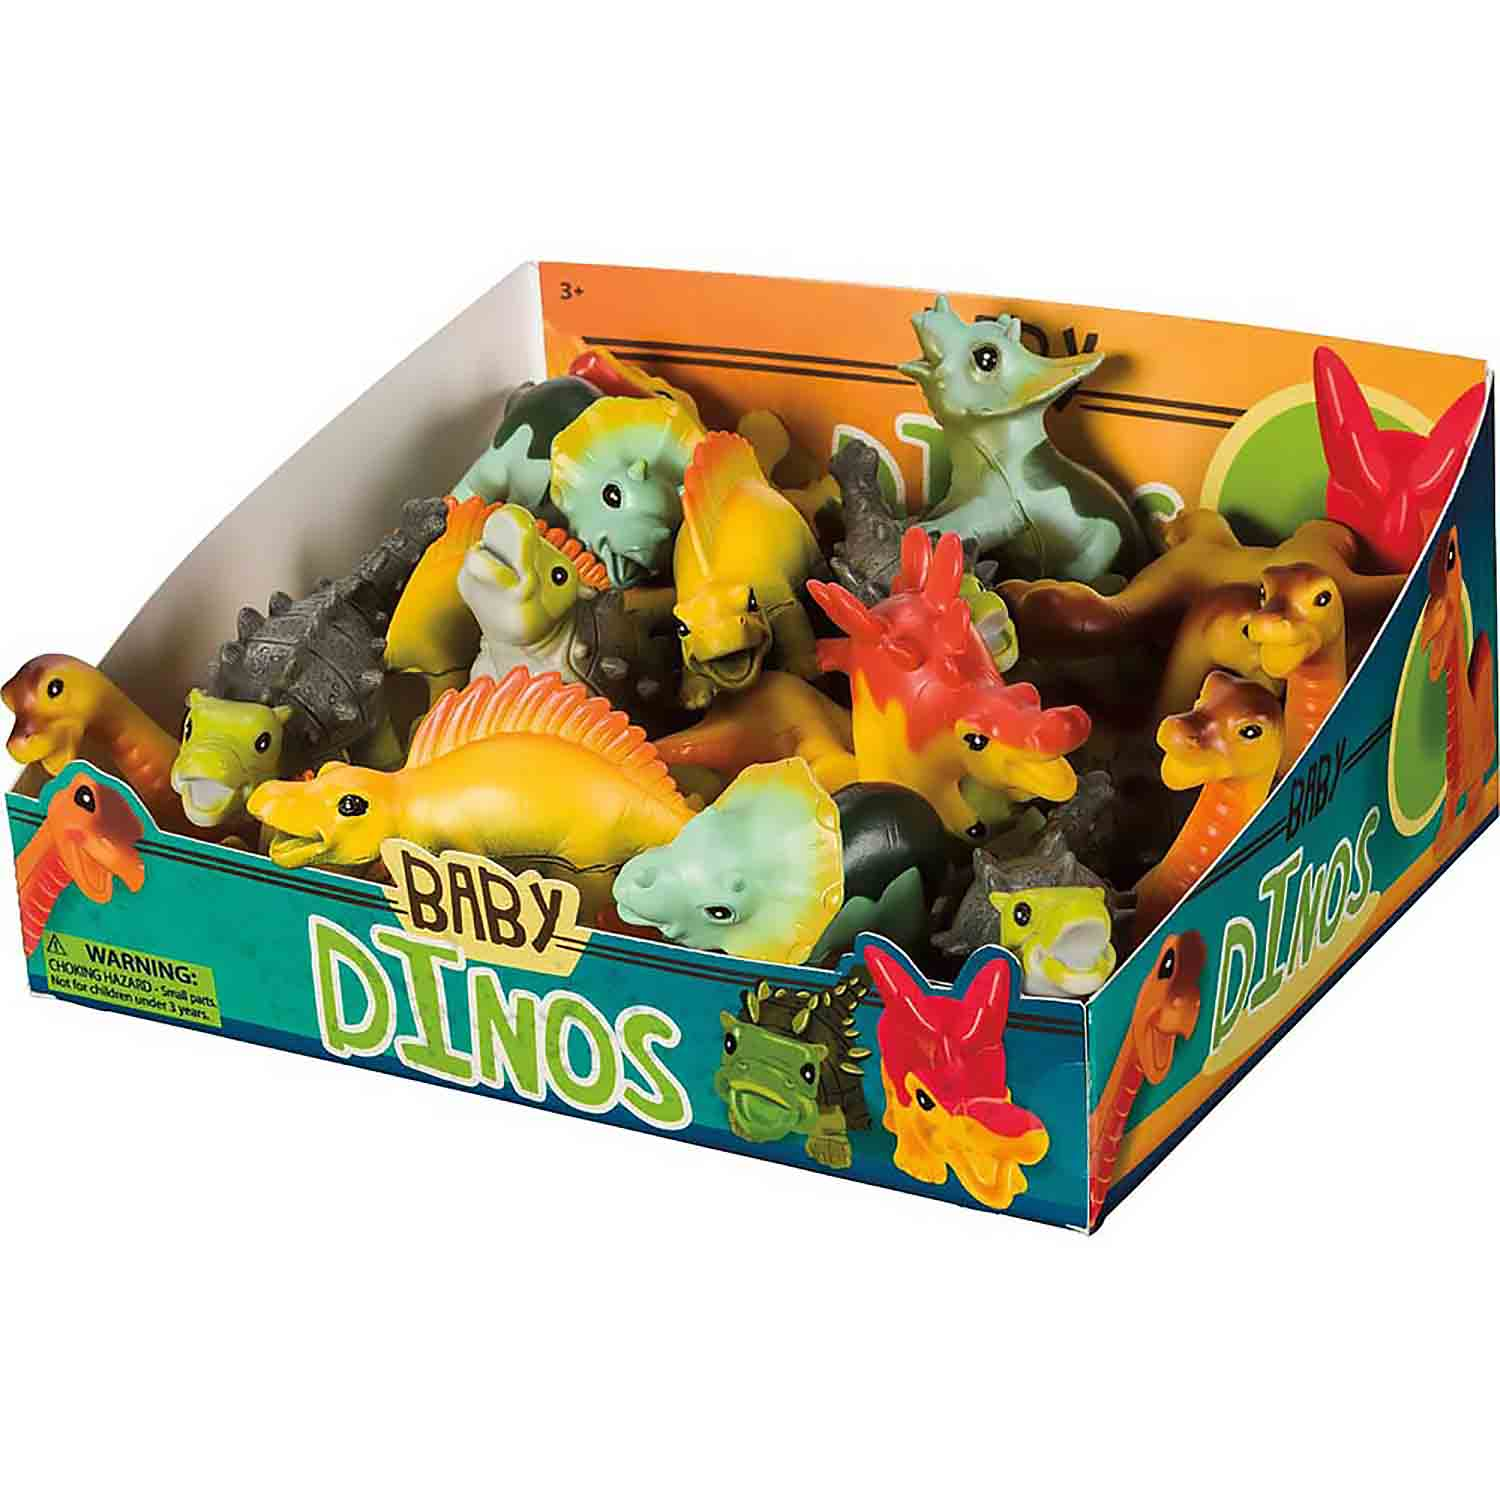 Baby Dinos Assortment